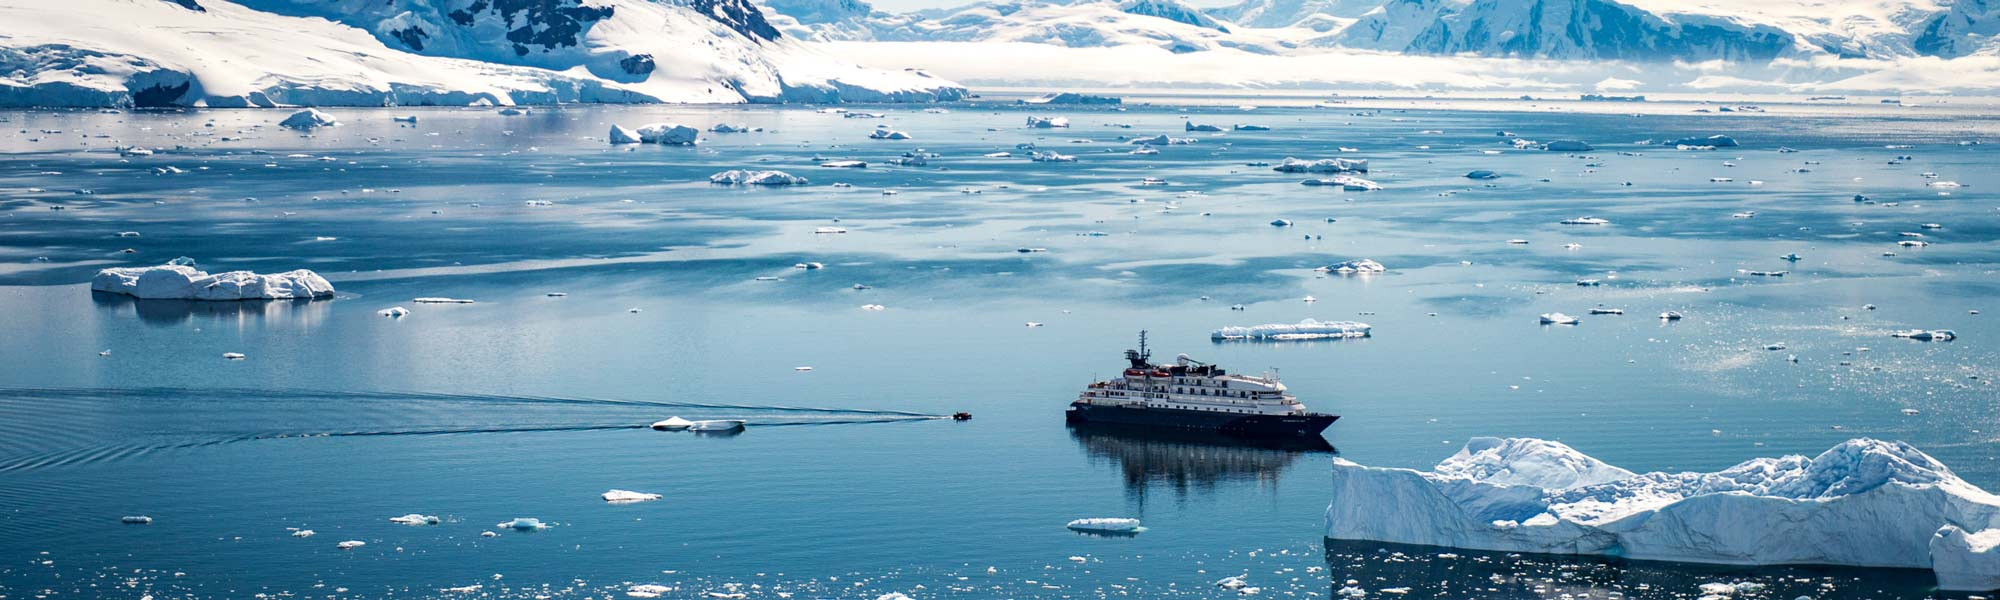 World-Leading Luxury & Expedition Ships